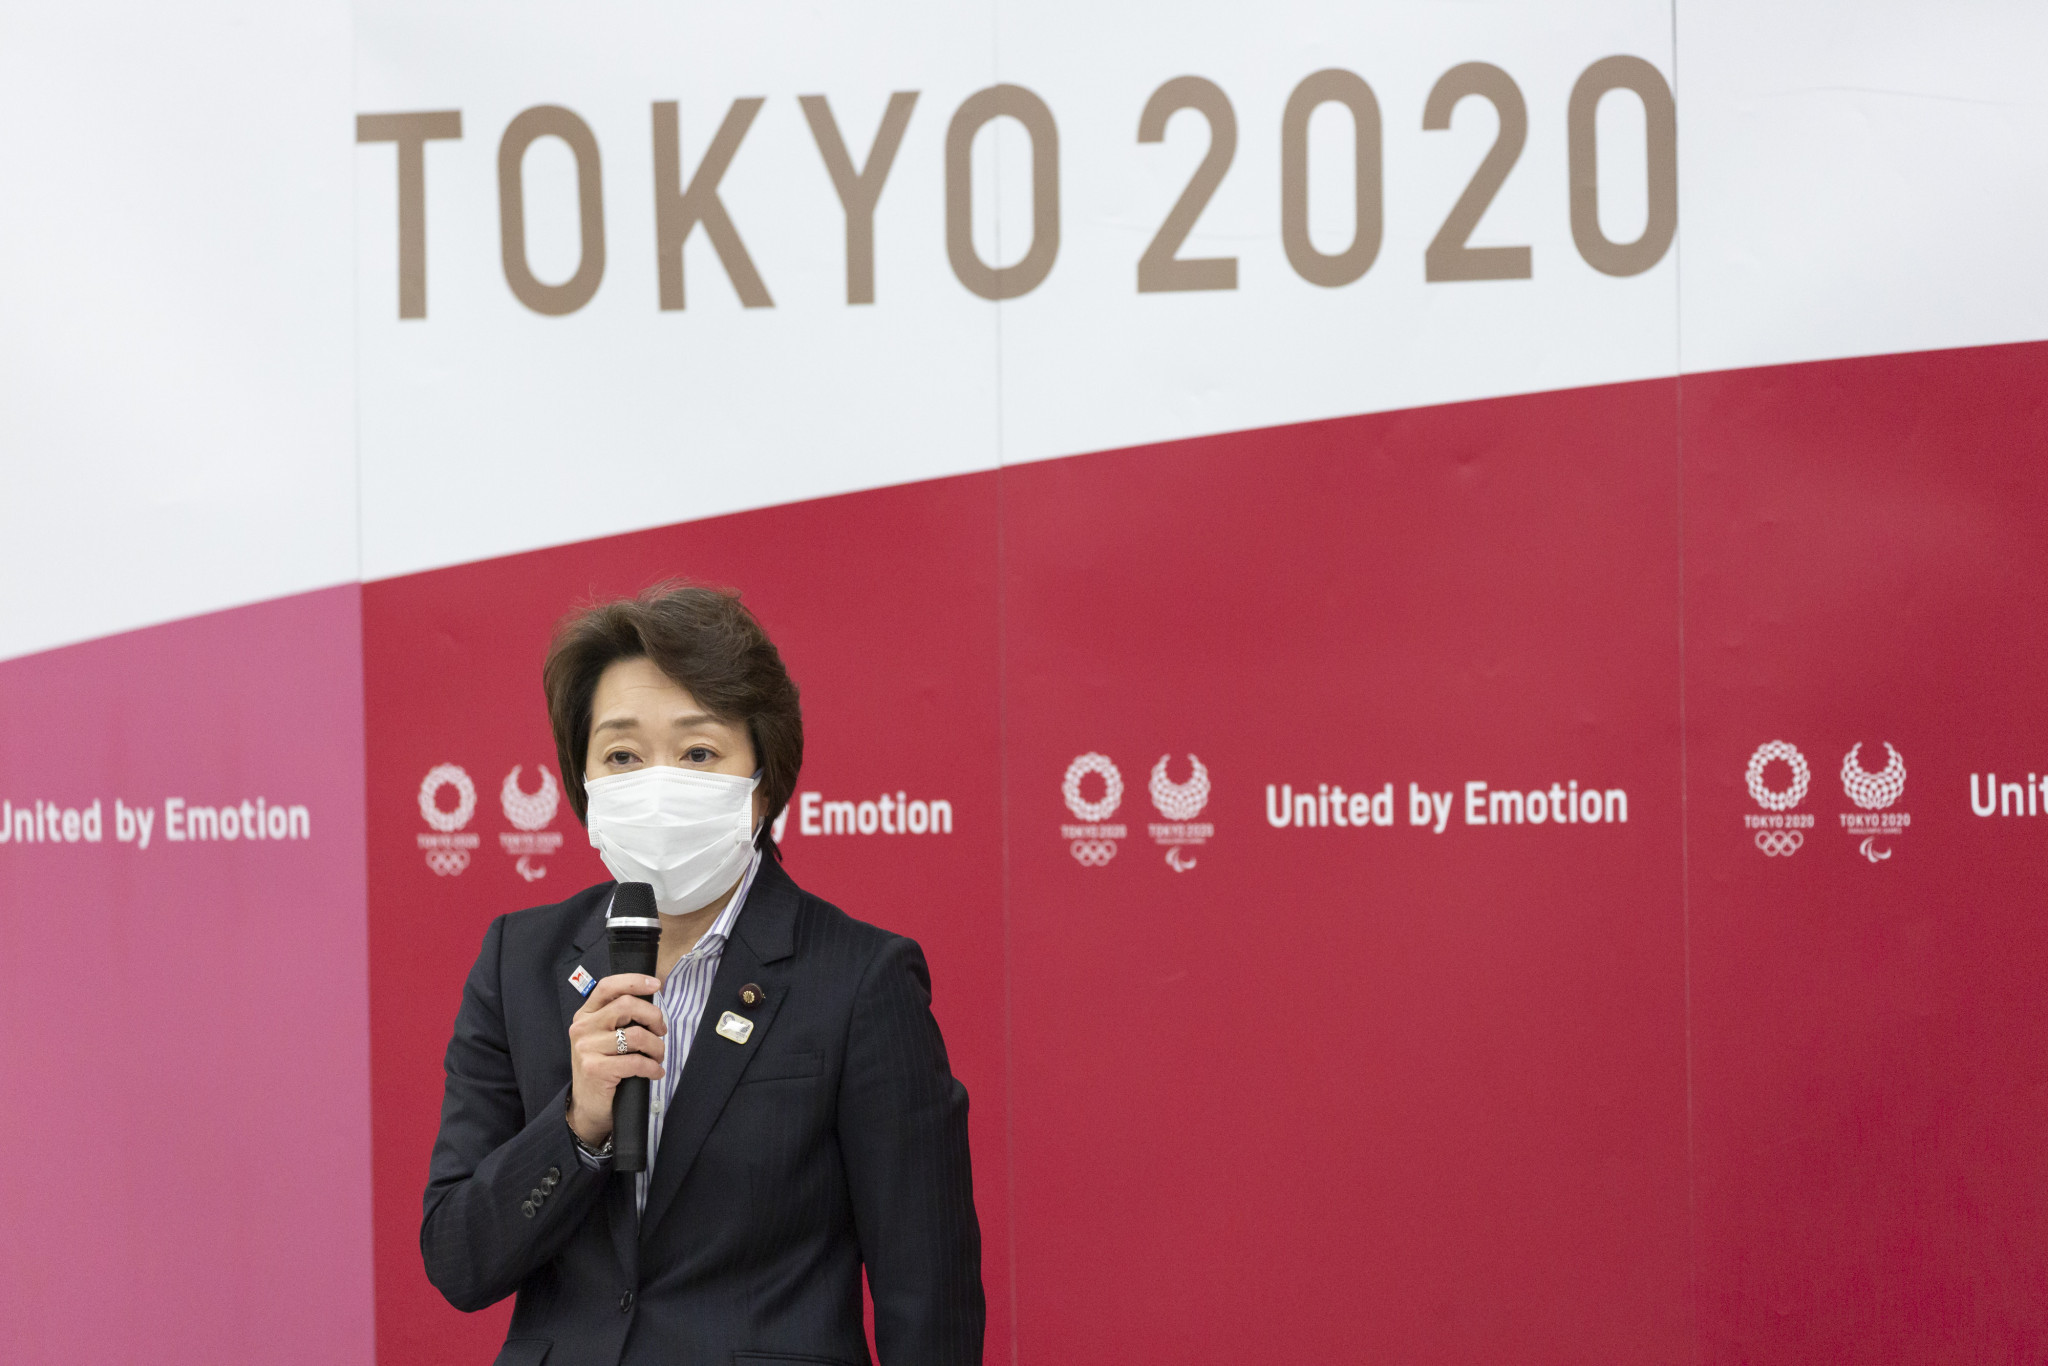 Tokyo 2020 Organising Committee expected to add at least 11 women to Board